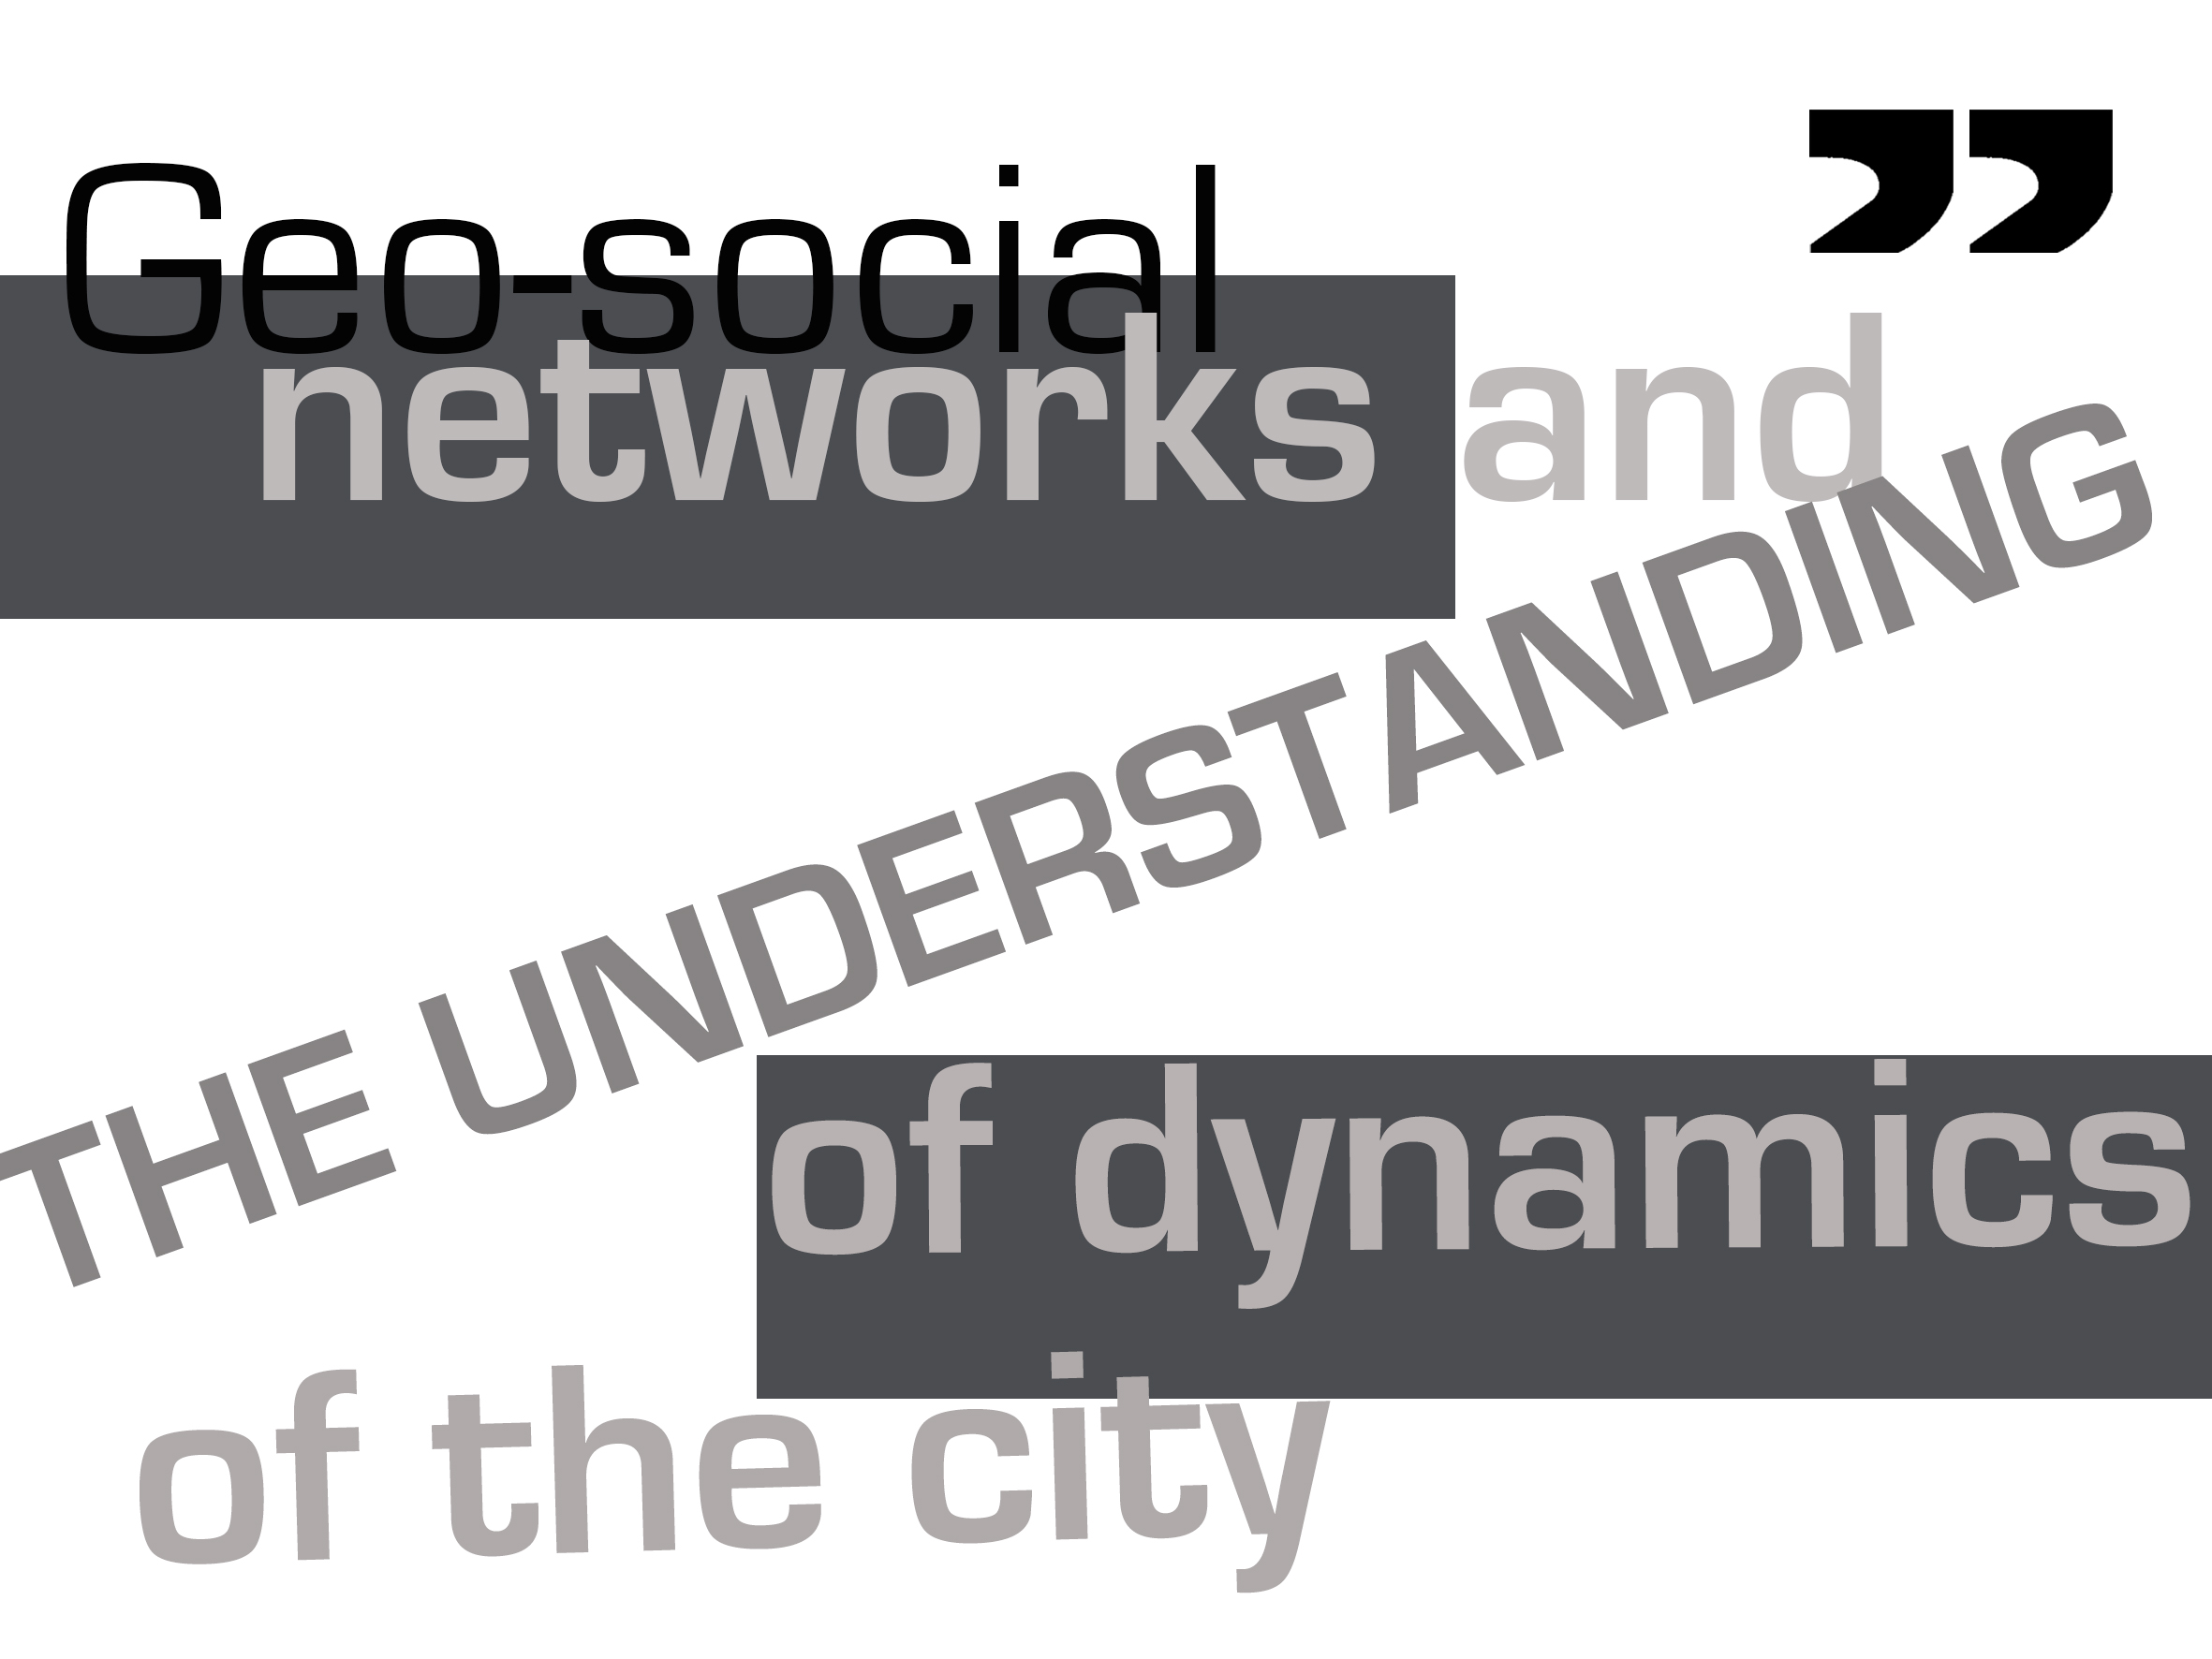 Geo-social networks and the understanding of the dynamics of the city: the case of Rio de Janeiro's boundaries of formal and informal neighborhoods